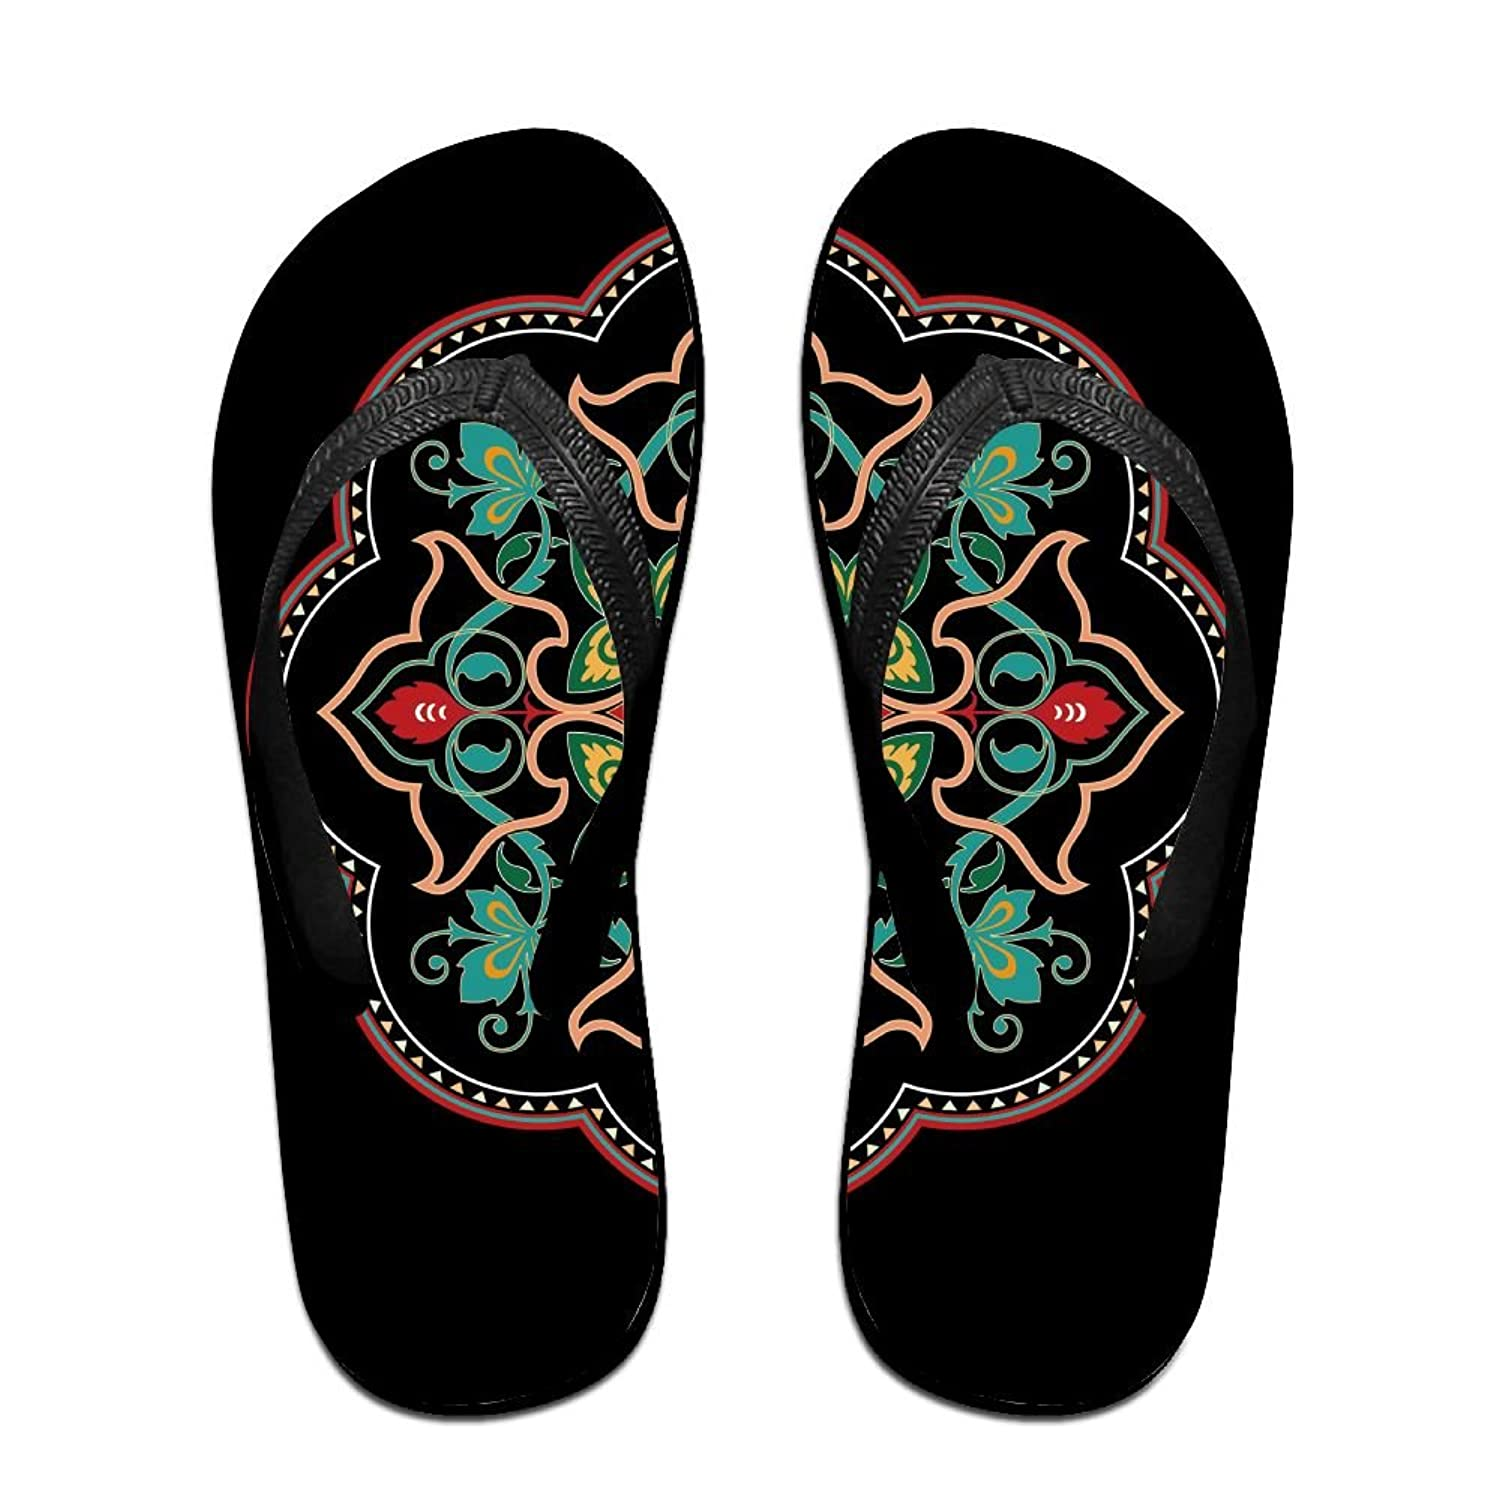 Creative Chinese Flowers Style Unisex Fashion Beach Flip Flops Sandals Slippers Sandal For Home & Beach